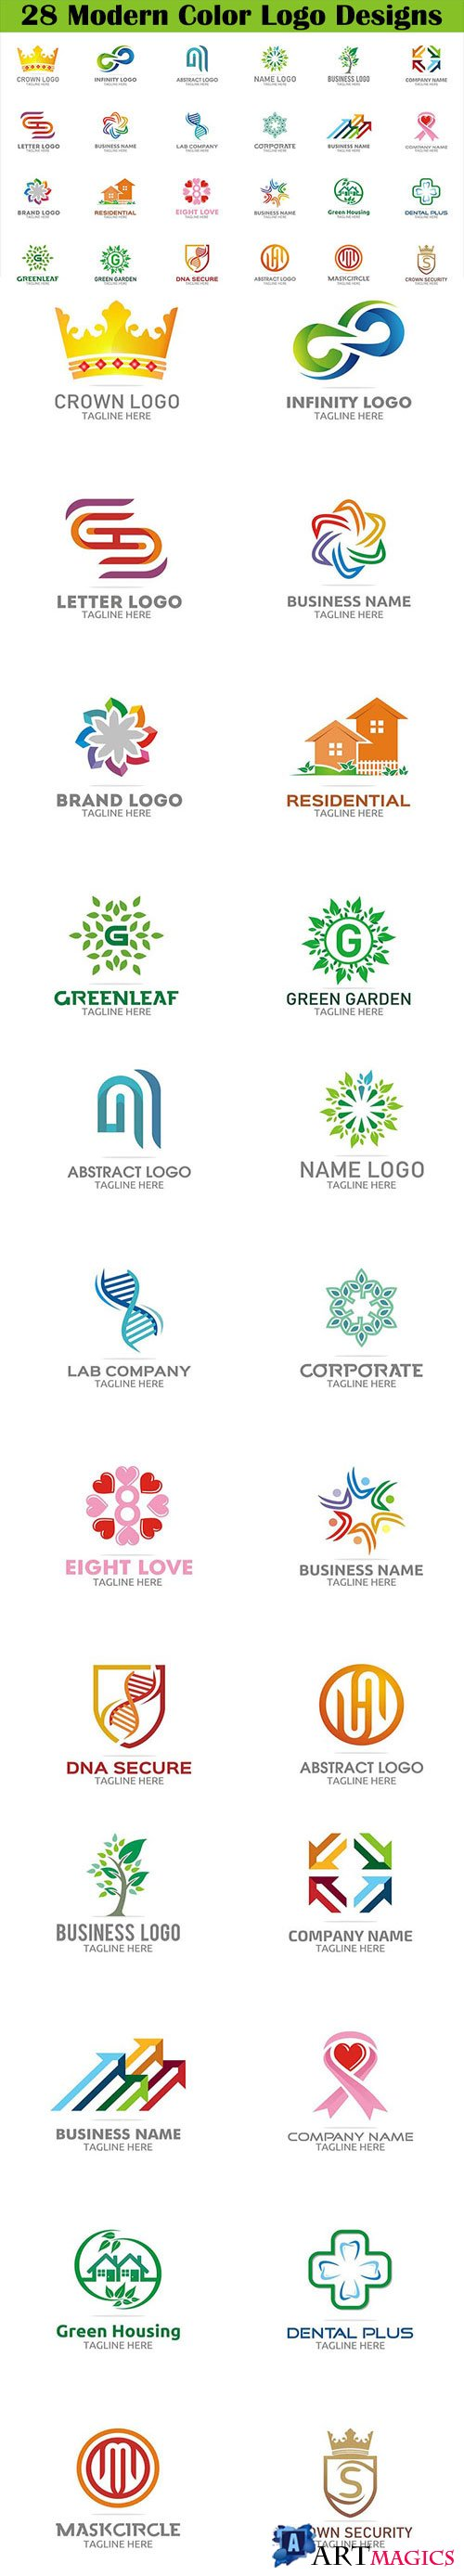 28 Modern Color Logo Designs